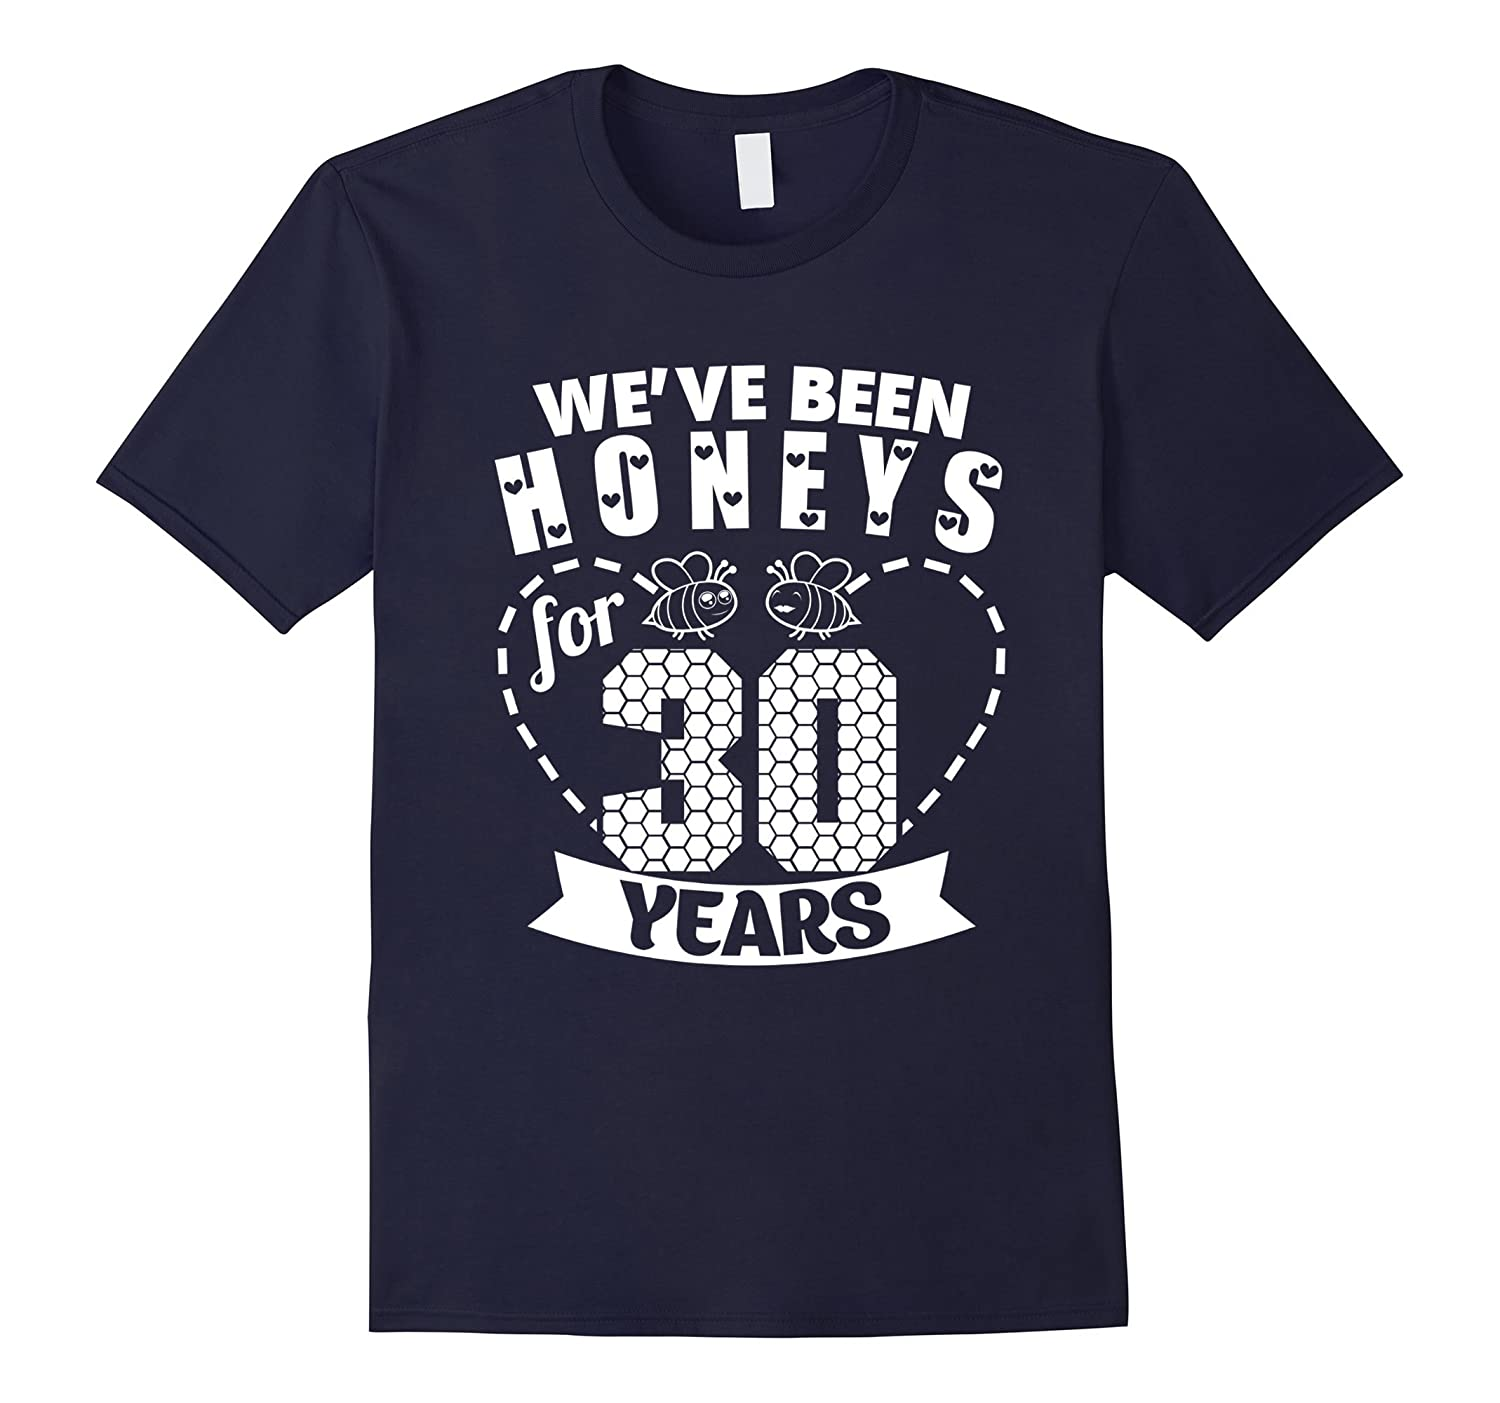 30th Wedding Anniversary Tee Shirt Marriage Gift For Couples